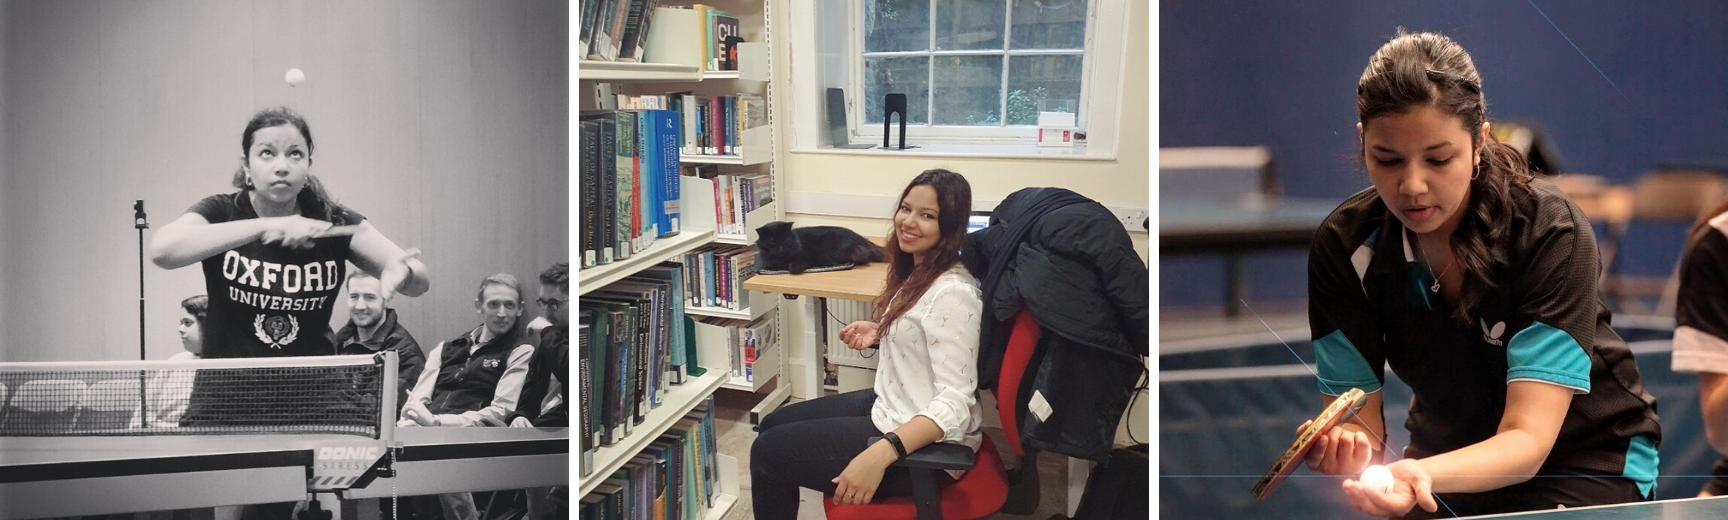 Two images of Priyal playing table tennis and one image of her in the Hertford College library